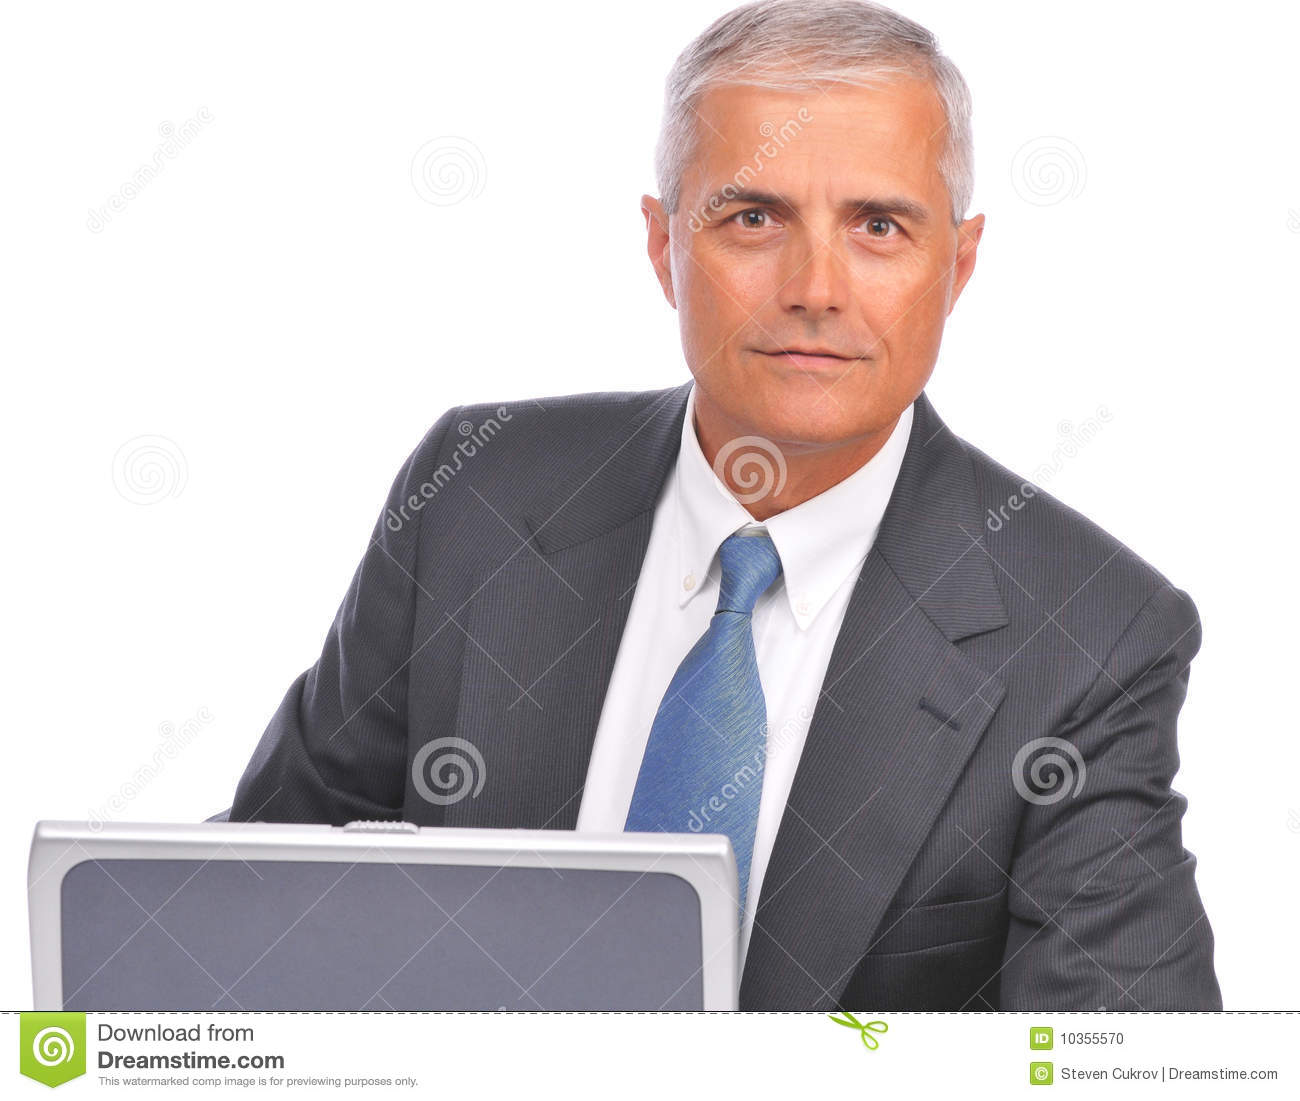 Middle aged Businessman Looking over top of laptop